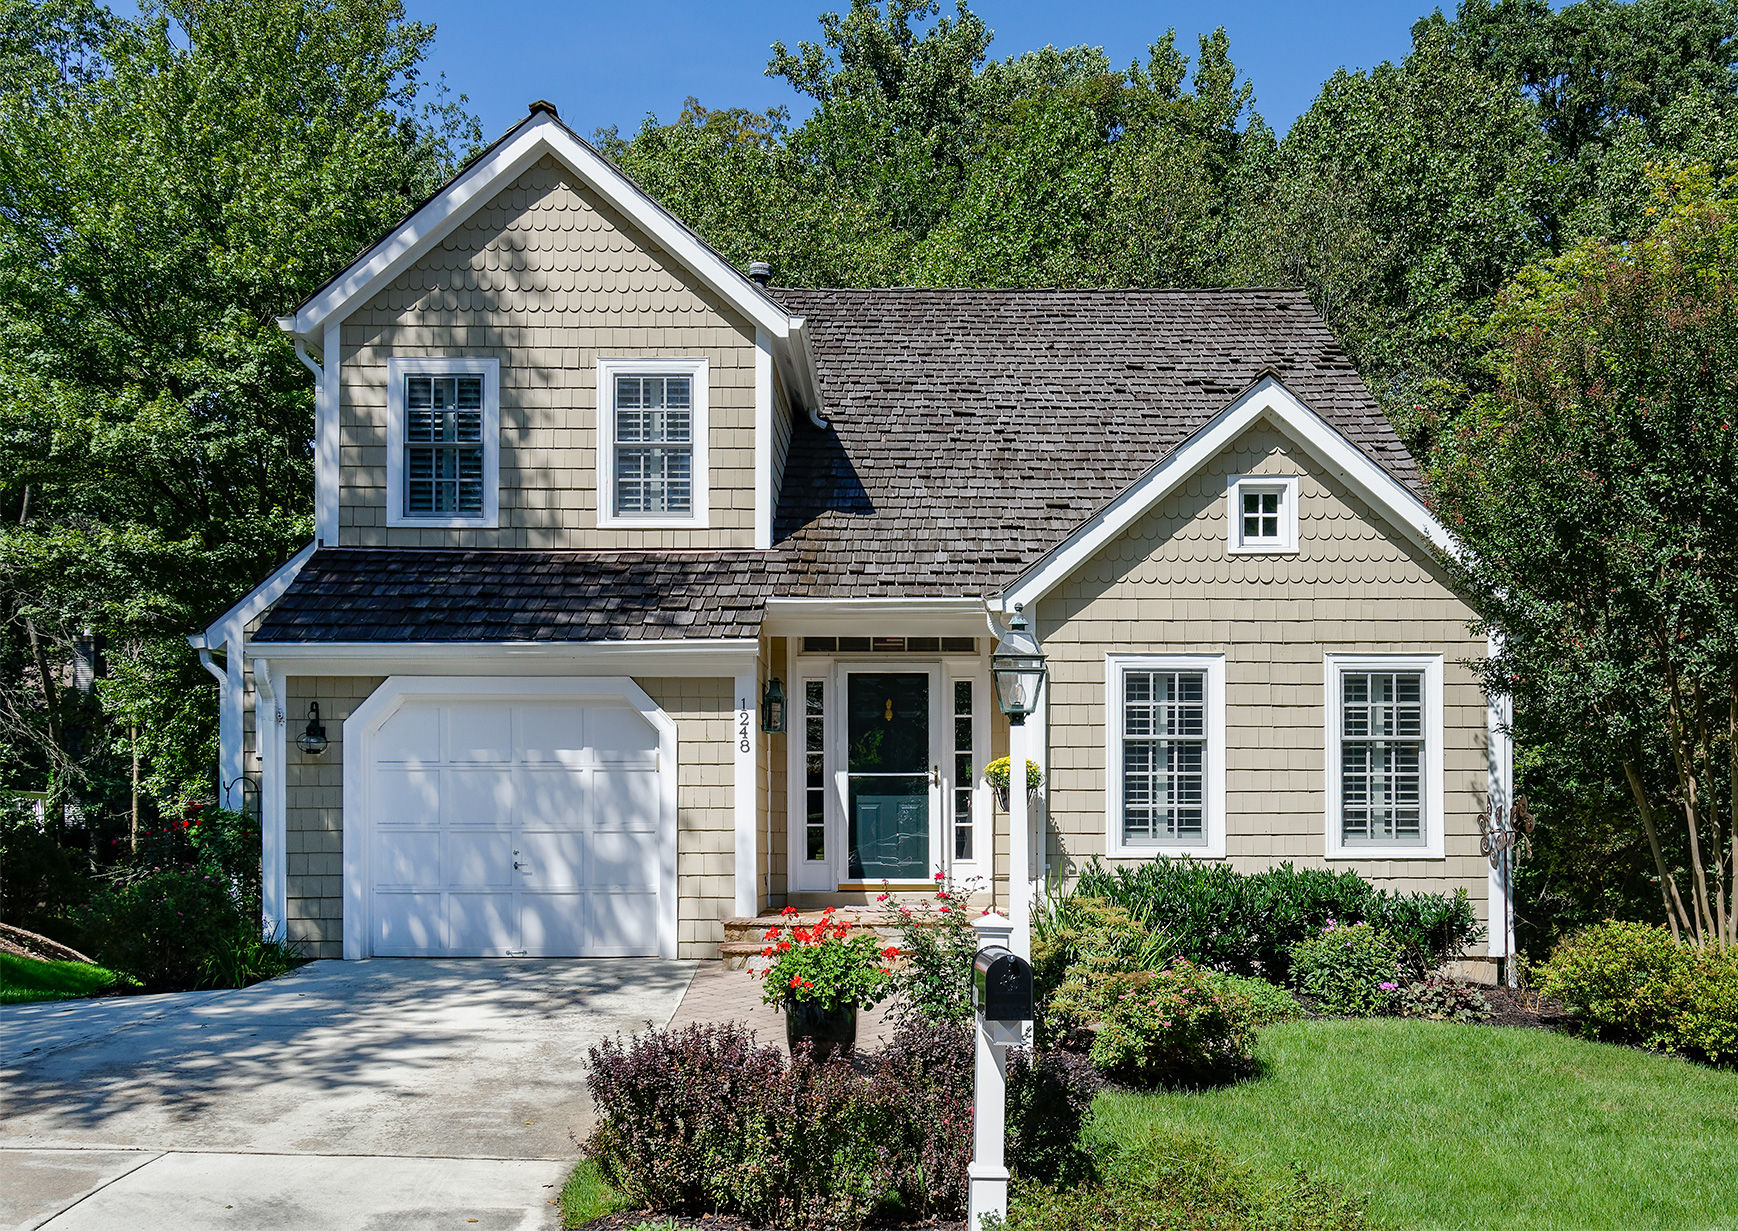 1248 Lamplighter Way, Reston- For Sale